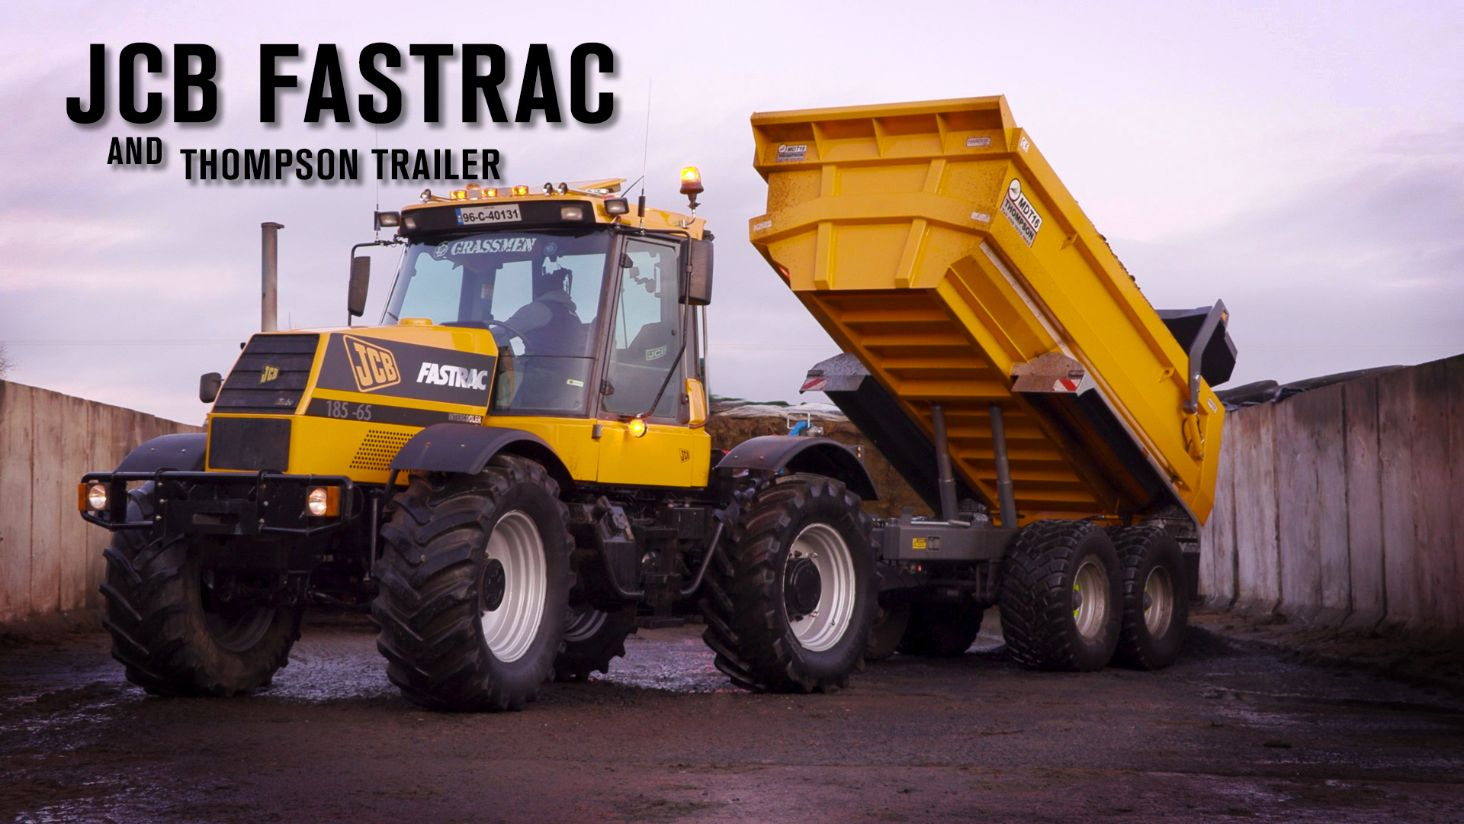 Gary Tests the Fastrac with the New Thompson Dump Trailer